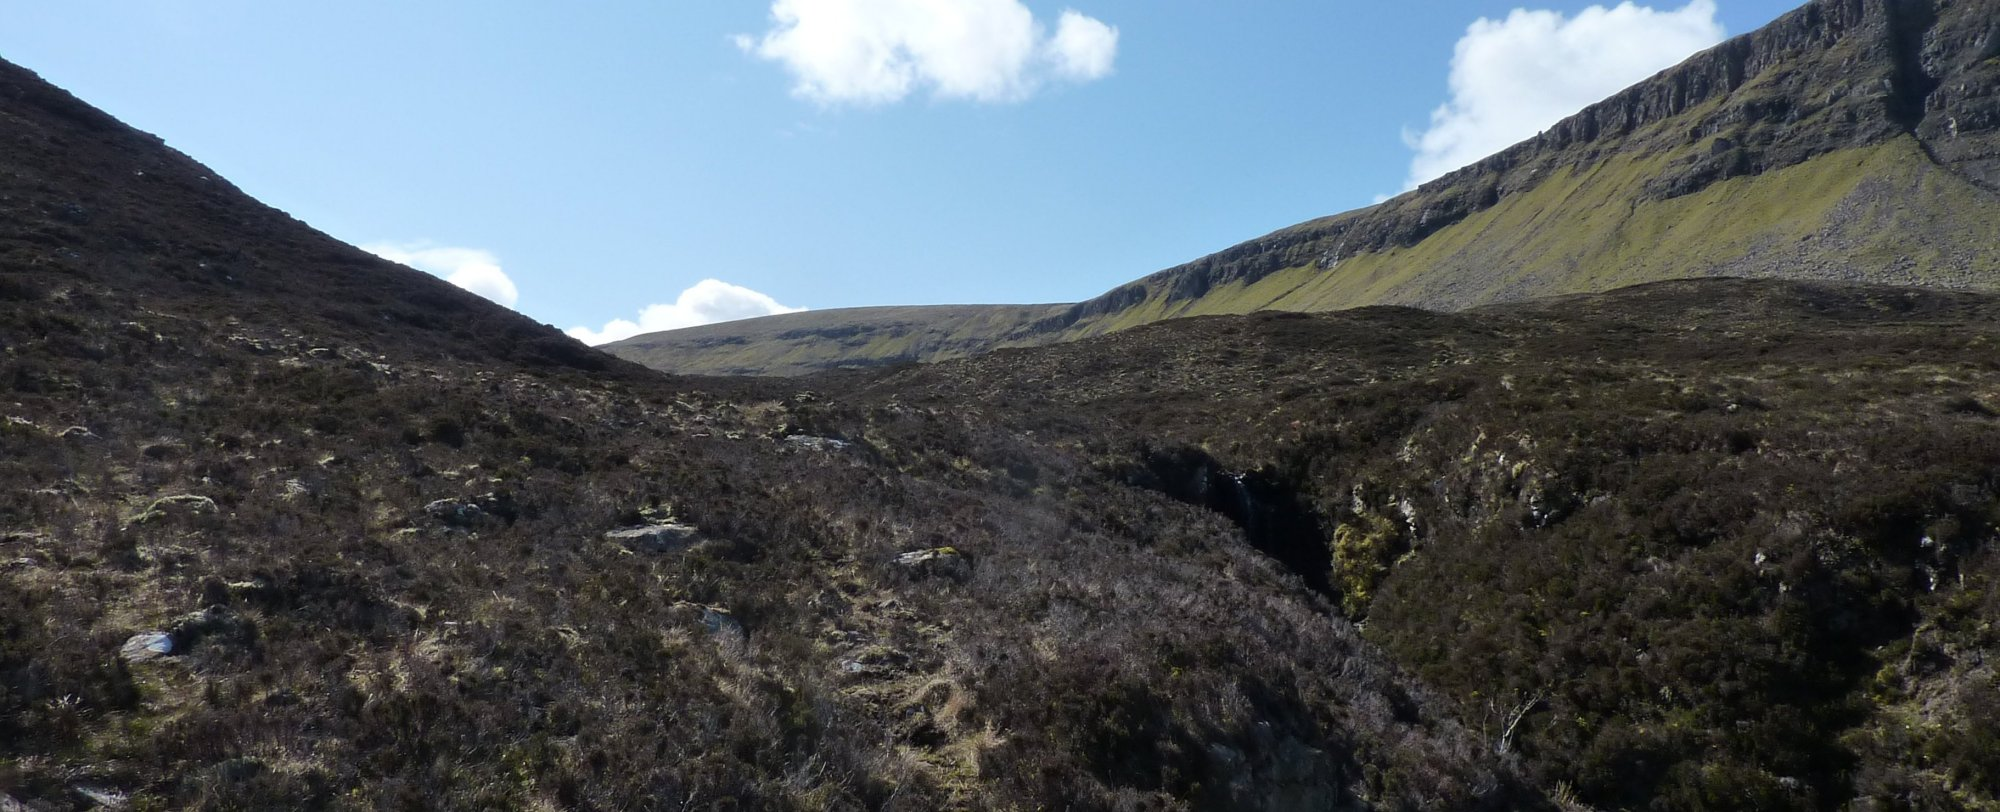 Following what path there is, up into Coire Mhic Eachainn